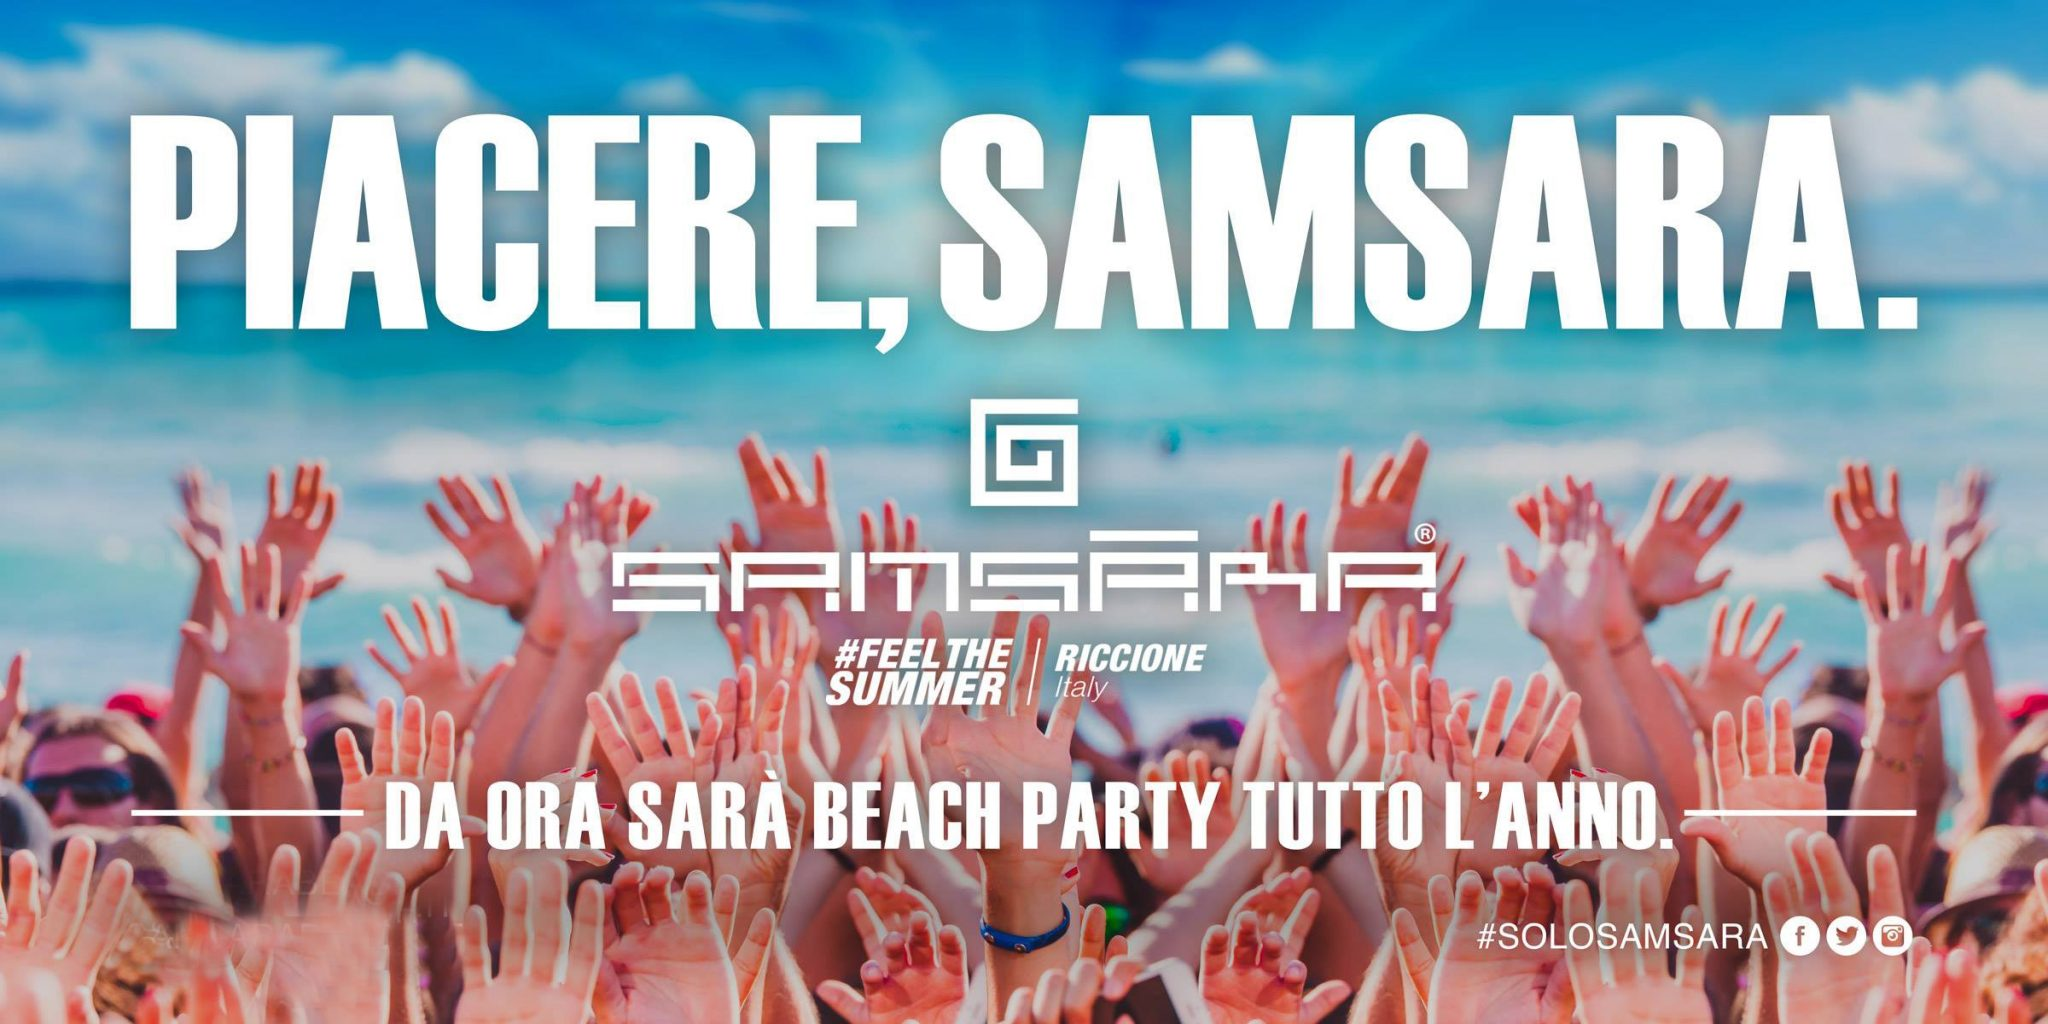 samsara-strand-gallipoli-bed-a-lu-fanizza